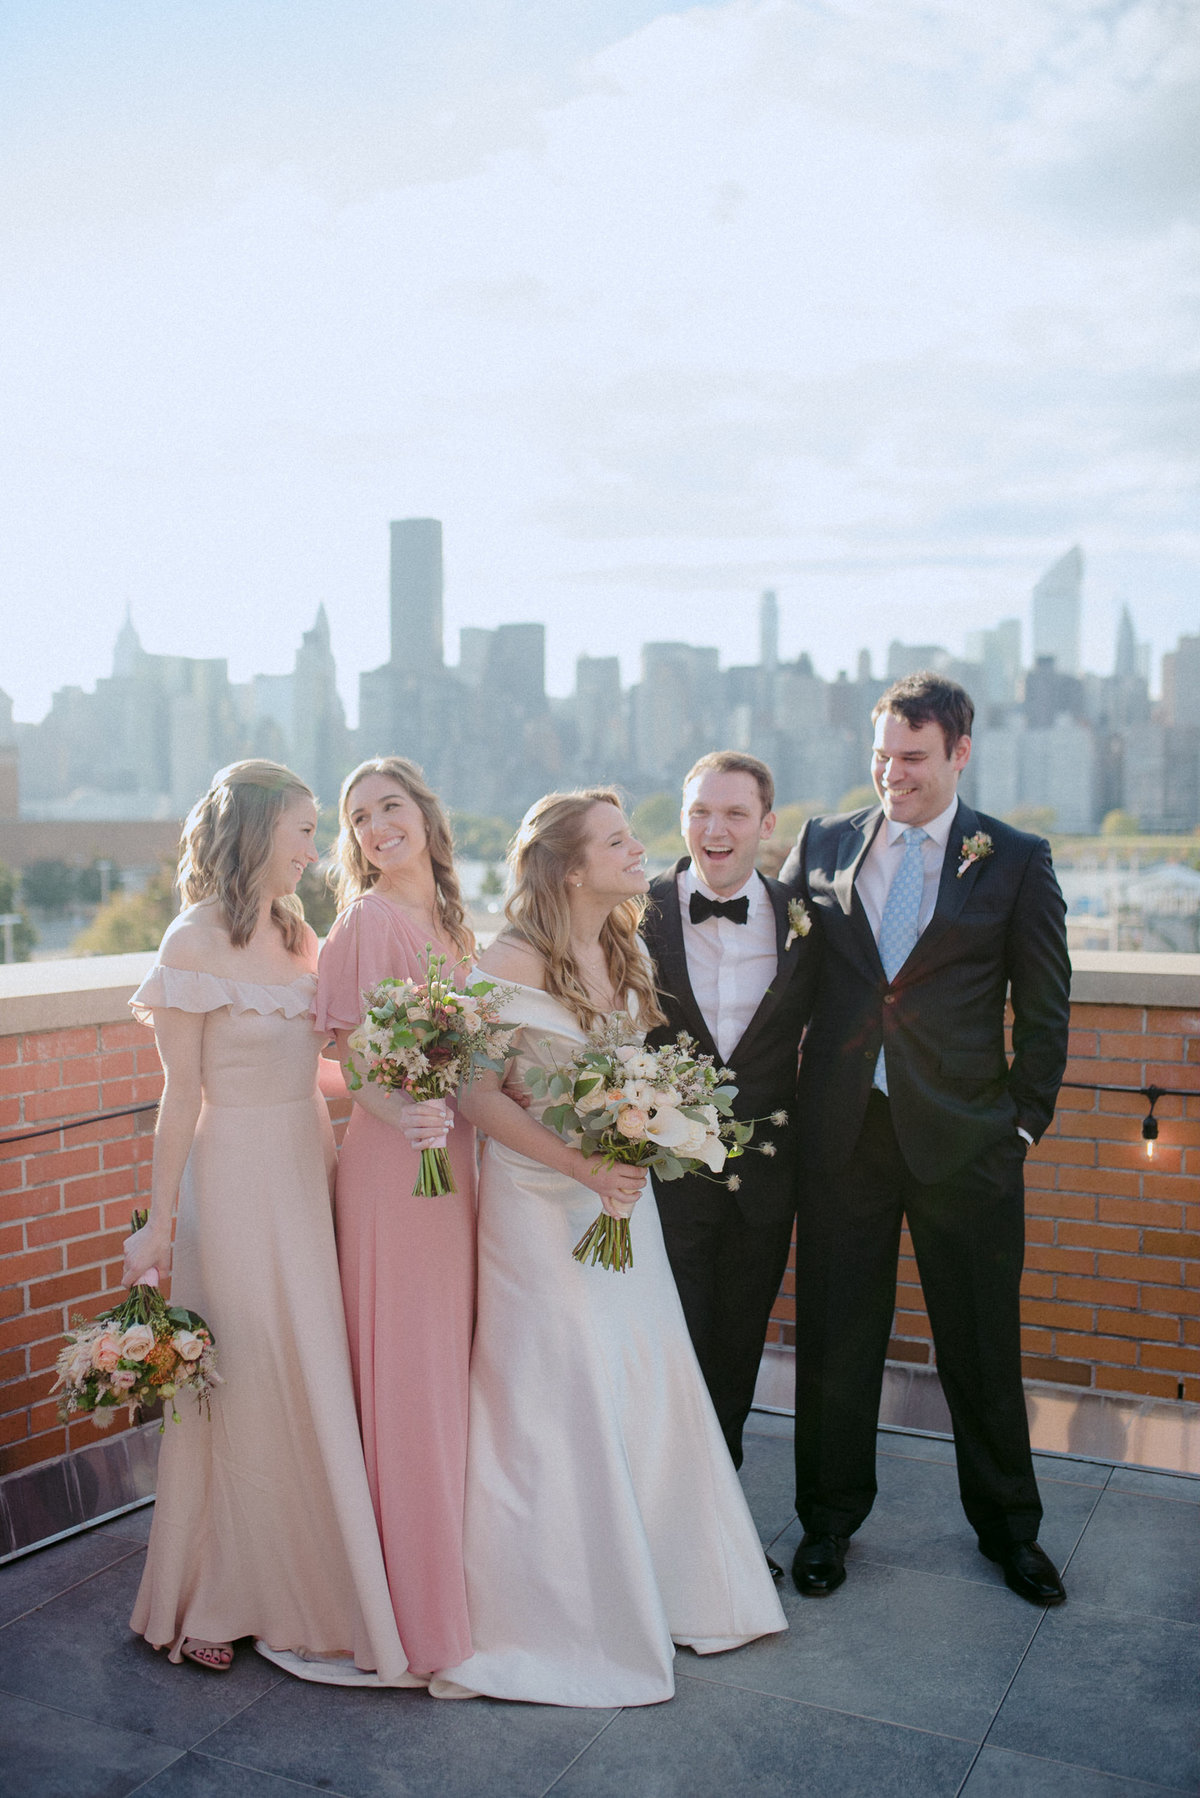 bordone-lic-brooklyn-queens-wedding-photographer-0019